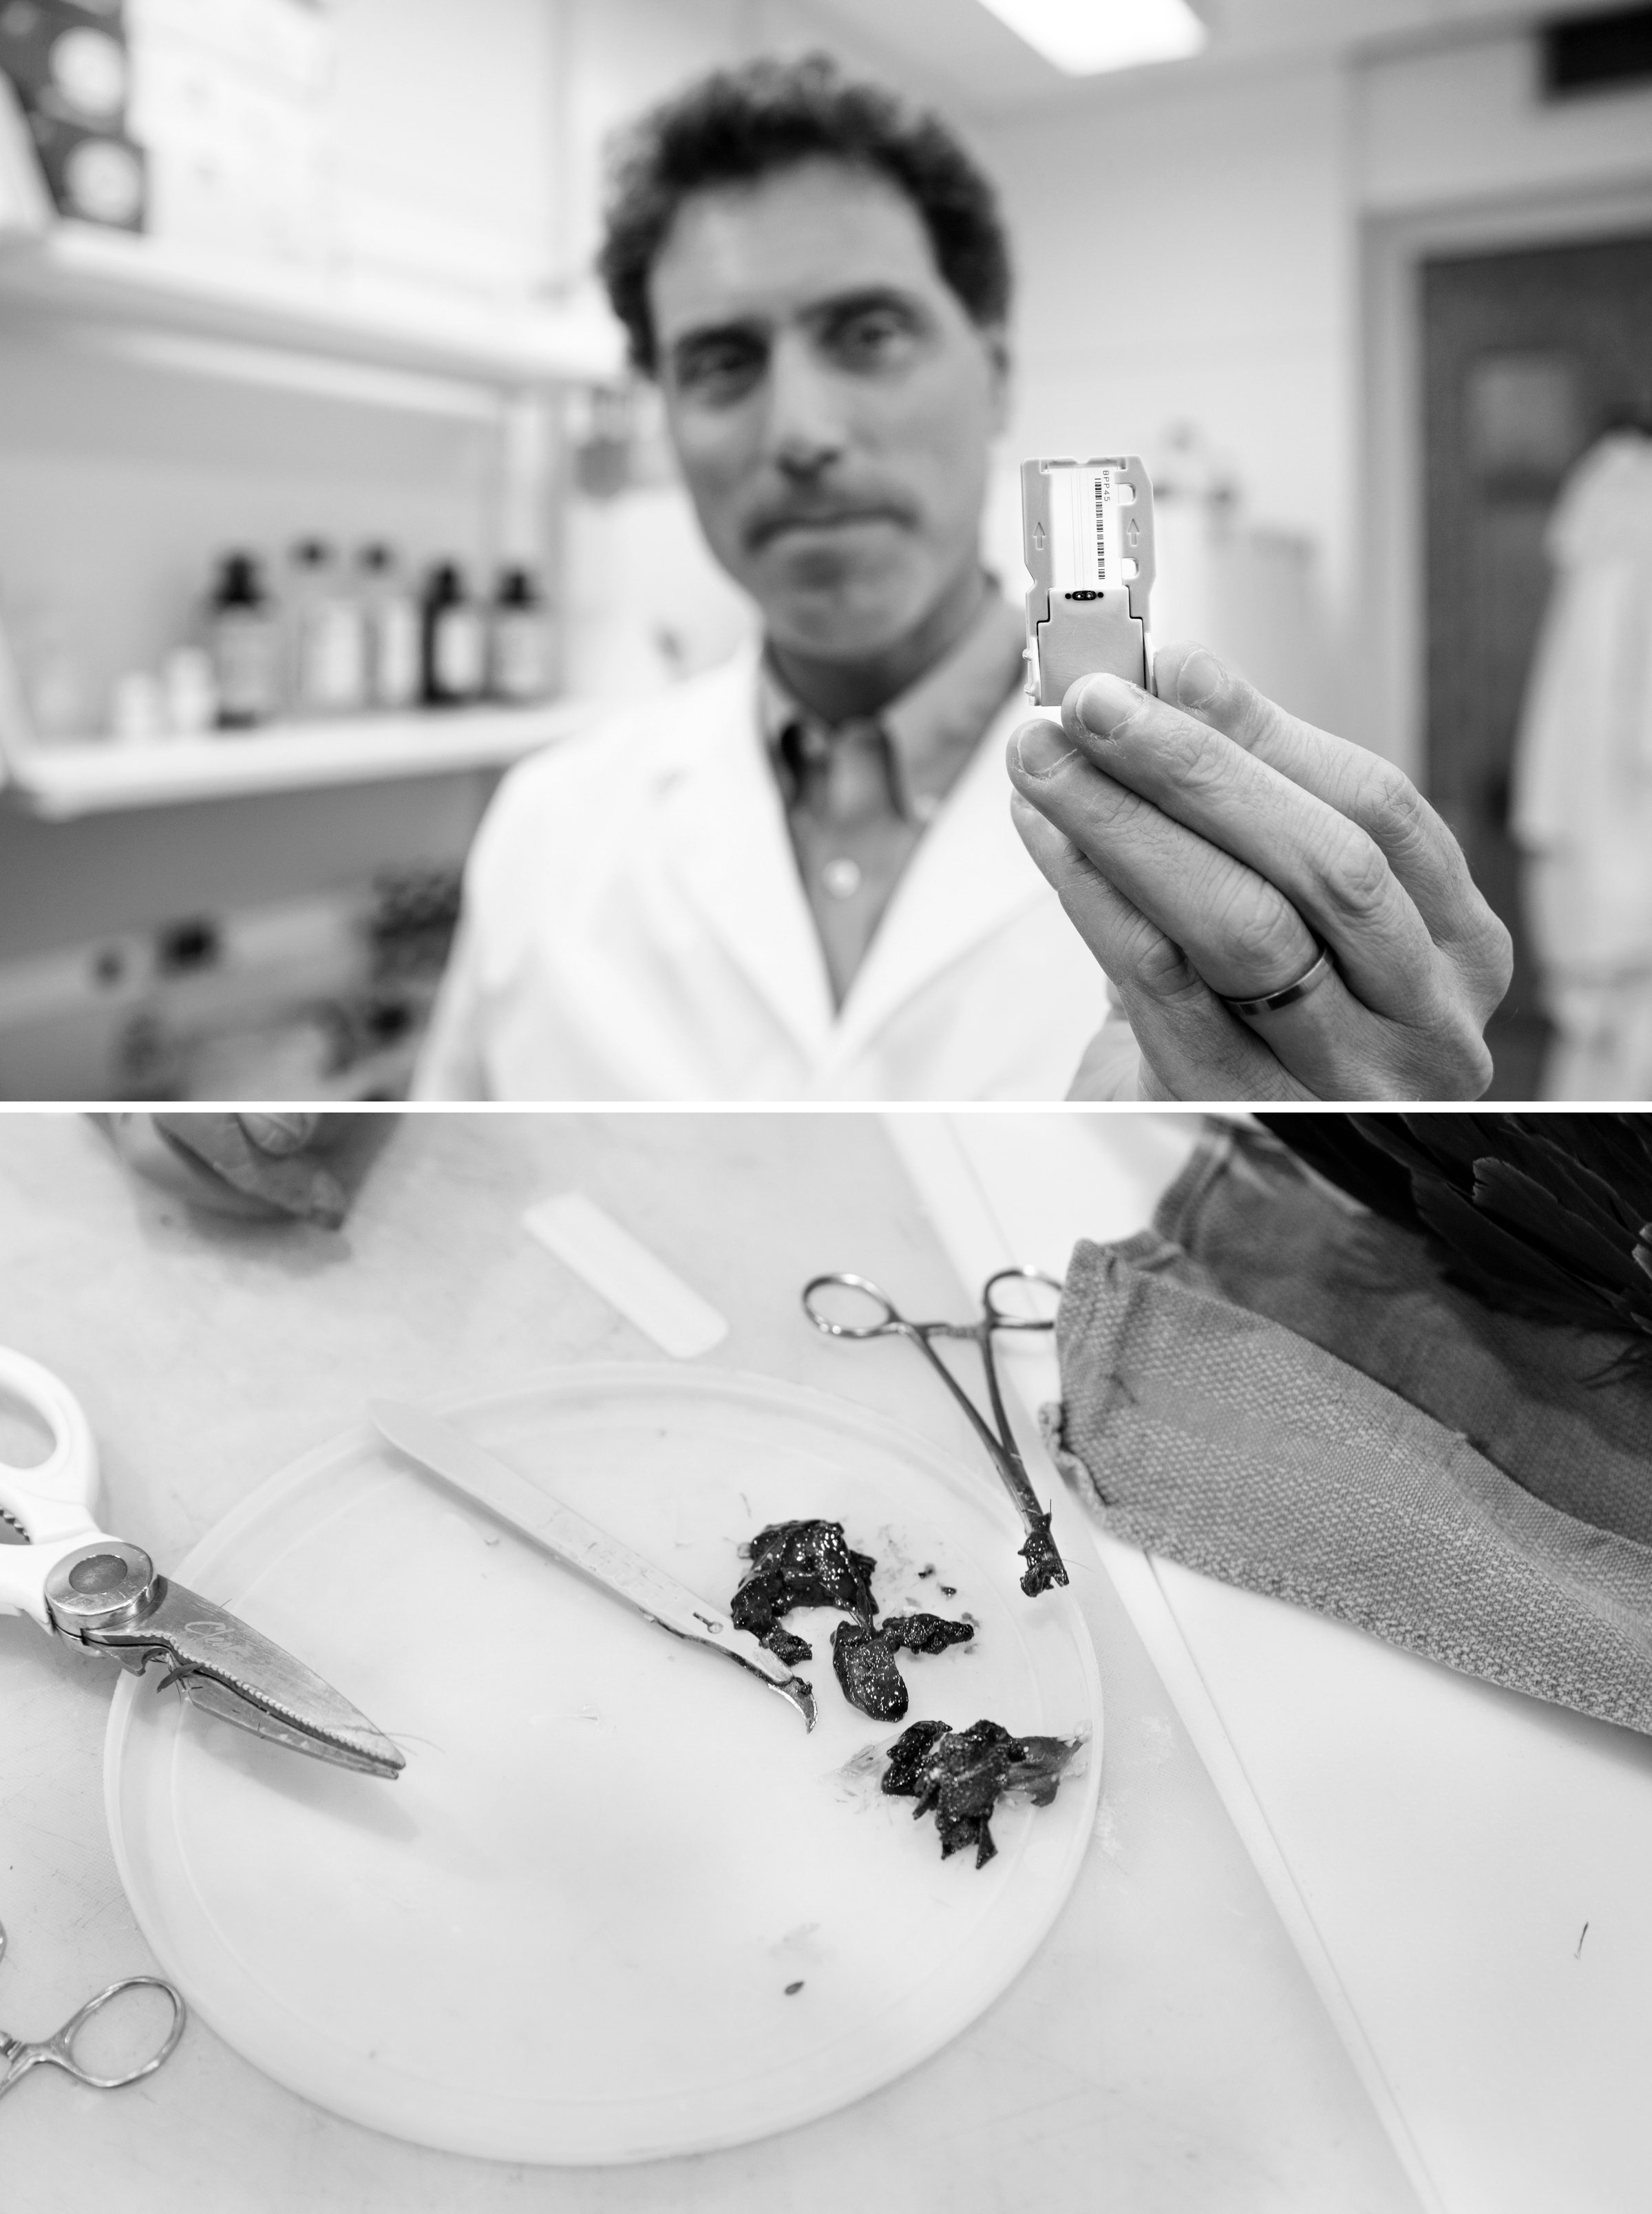 Tony Goldberg, top, is helping to crack the case by using advanced technology to analyze tissue samples from dead eagles. Photos: Tom Lynn